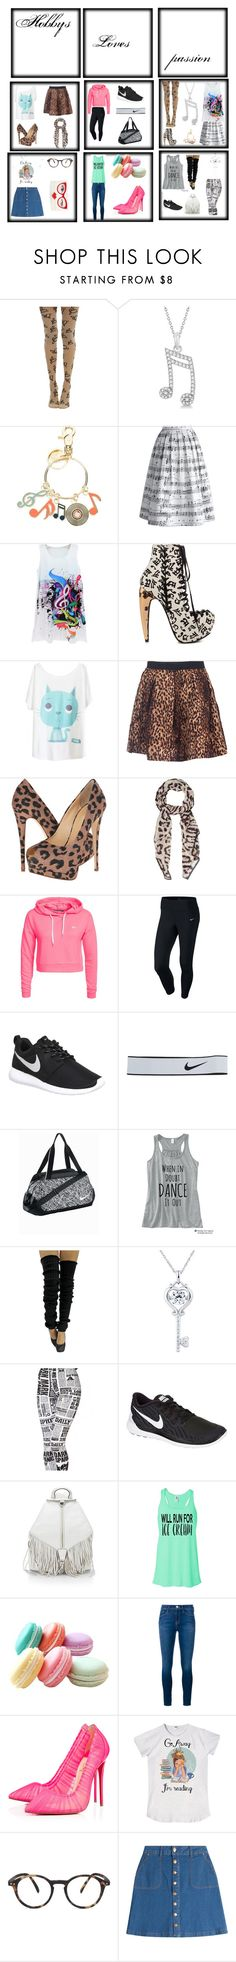 """""""Hobbys"""" by laurenandapollo ❤ liked on Polyvore featuring Allurez, See by Chloé, Chicwish, Privileged, Giuseppe Zanotti, Givenchy, Only Play, NIKE, Rebecca Minkoff and Frame Denim"""